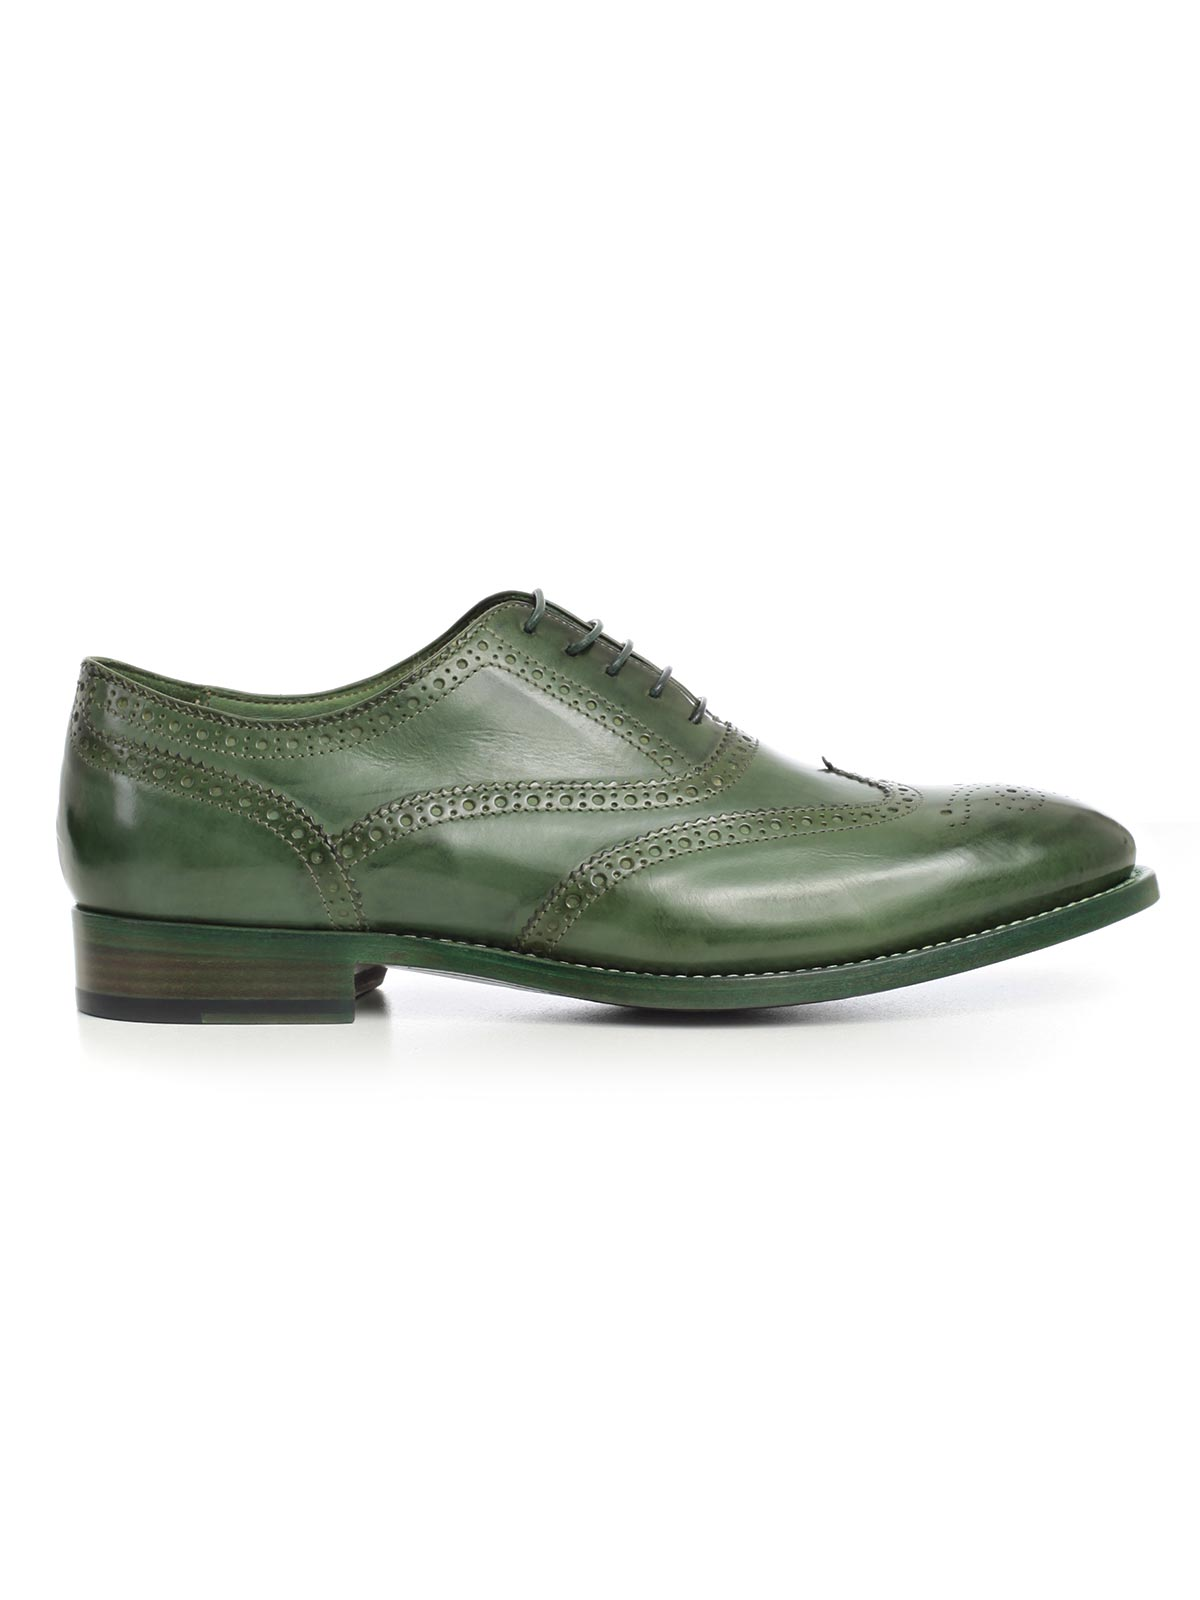 Picture of PAUL SMITH FOOTWEAR SCARPA